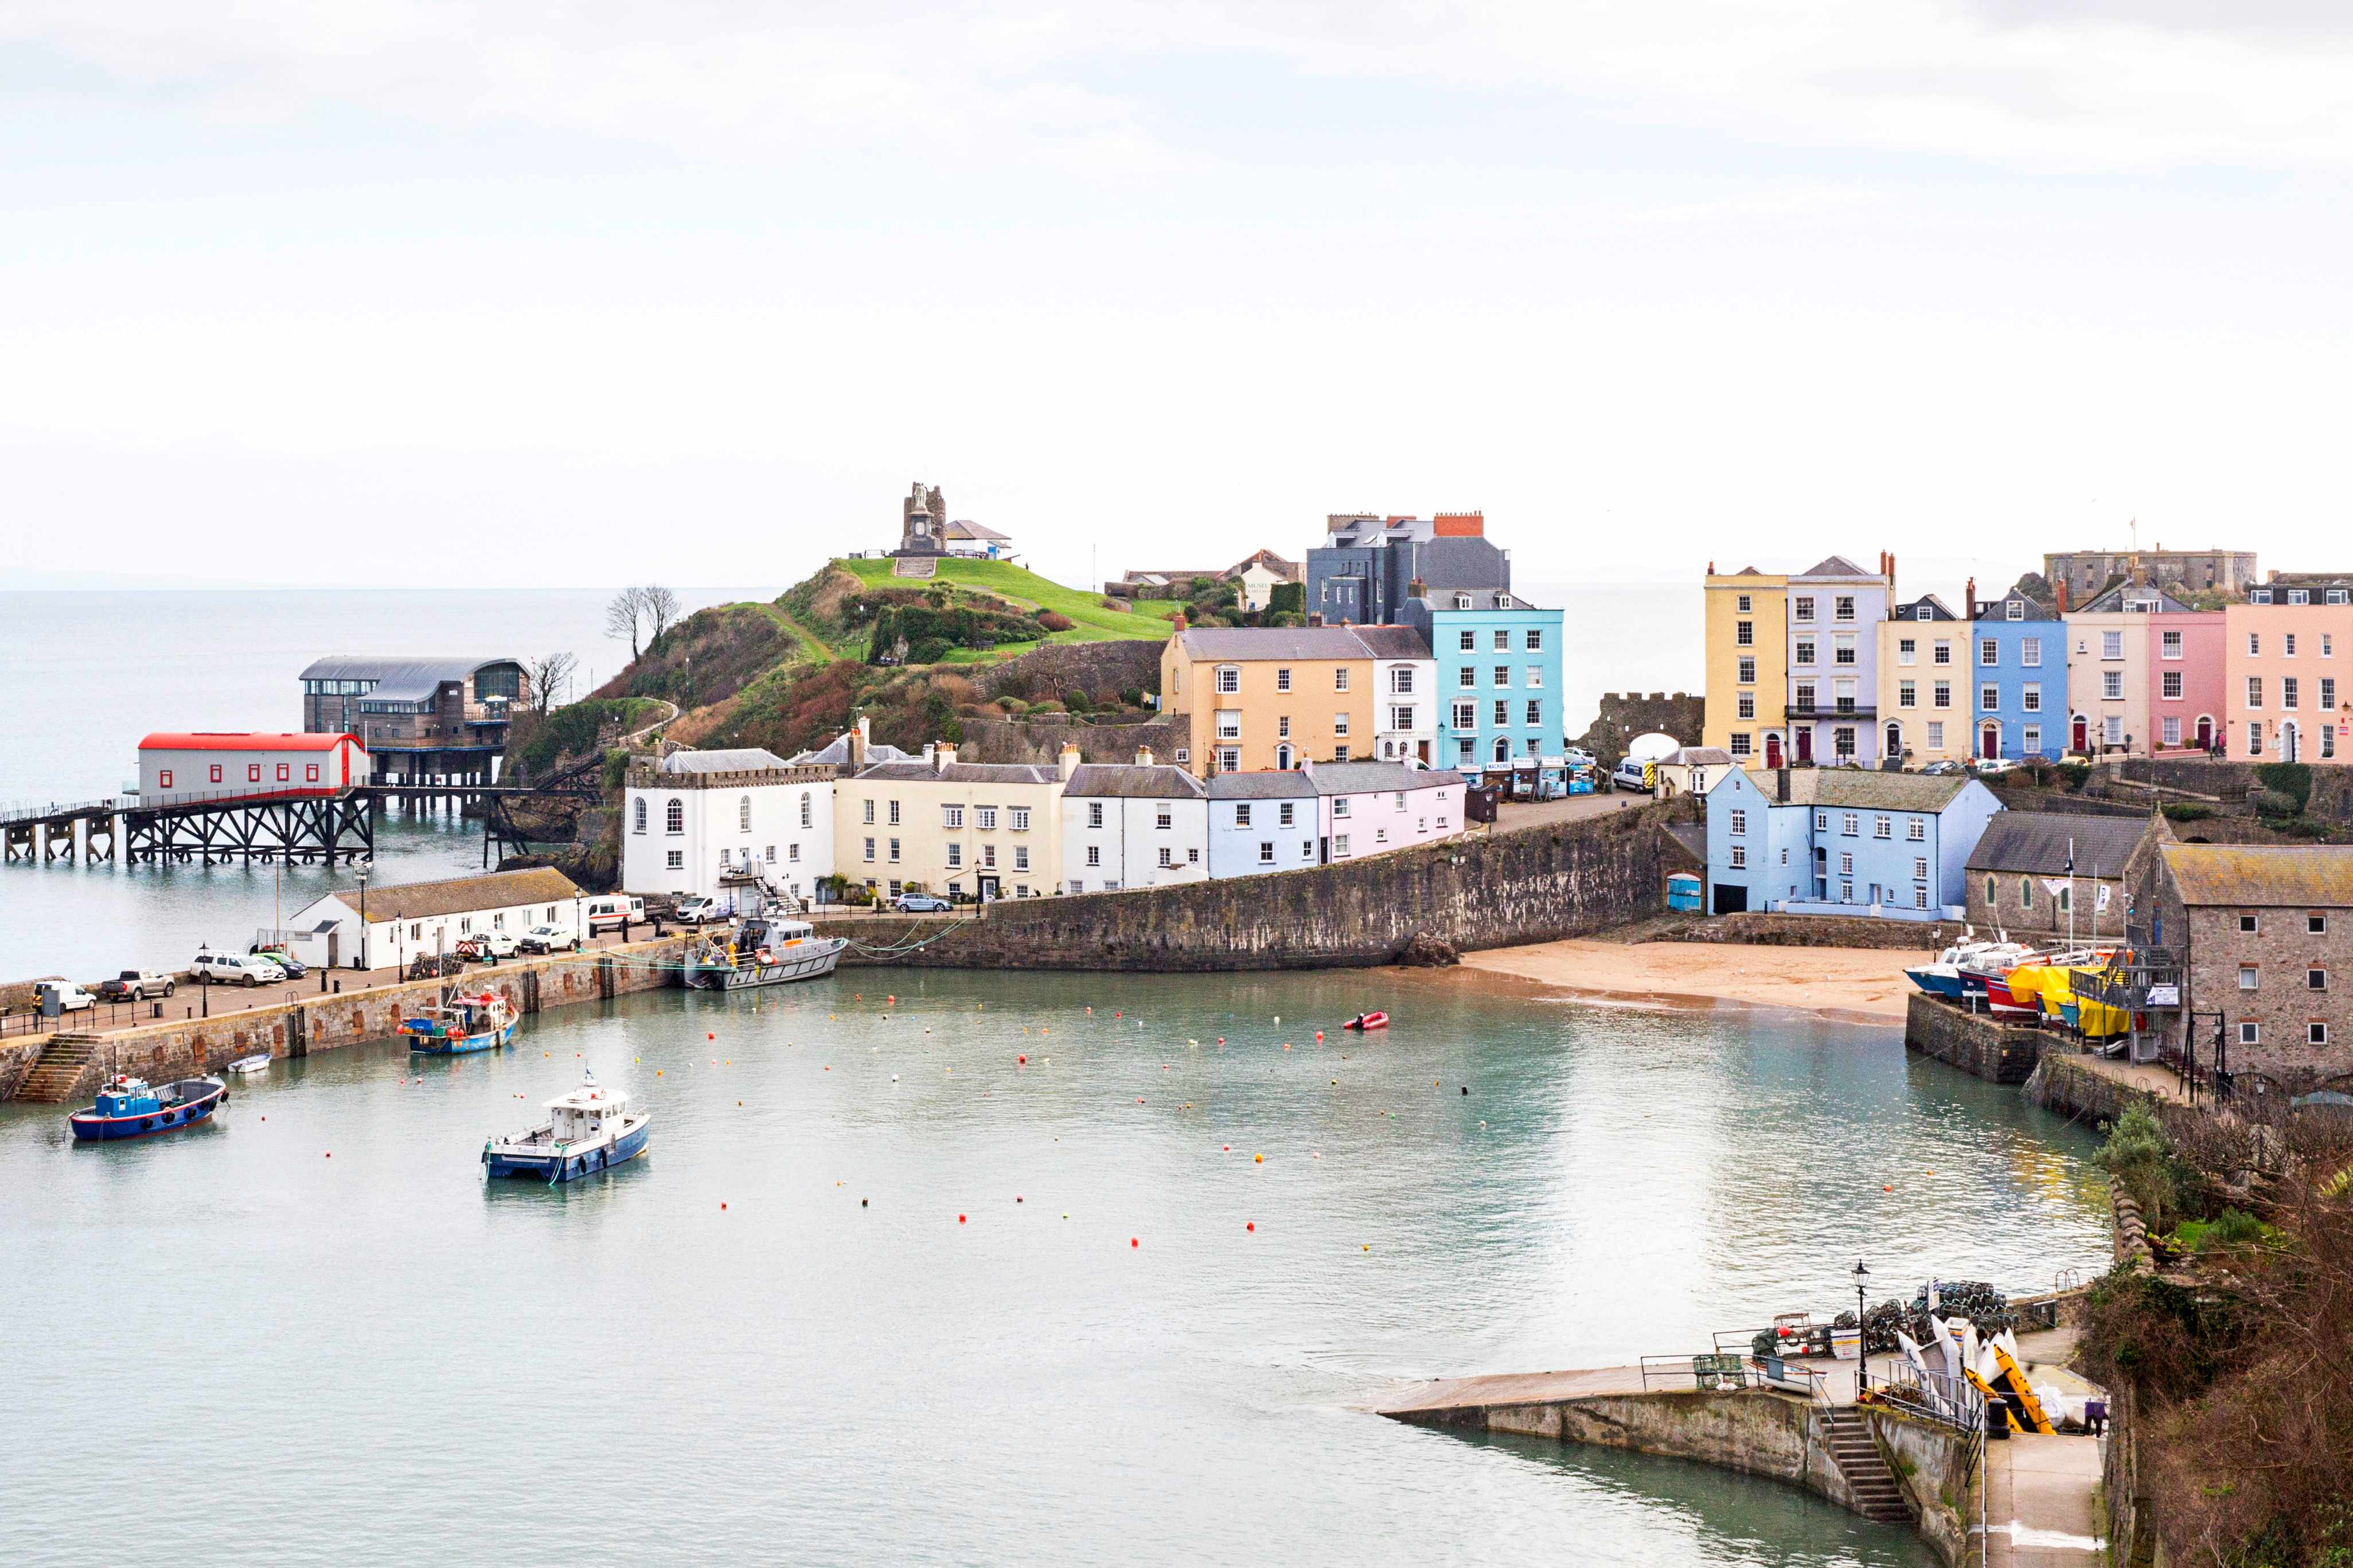 Tenby harbour with pastel coloured houses and a boat in the calm water